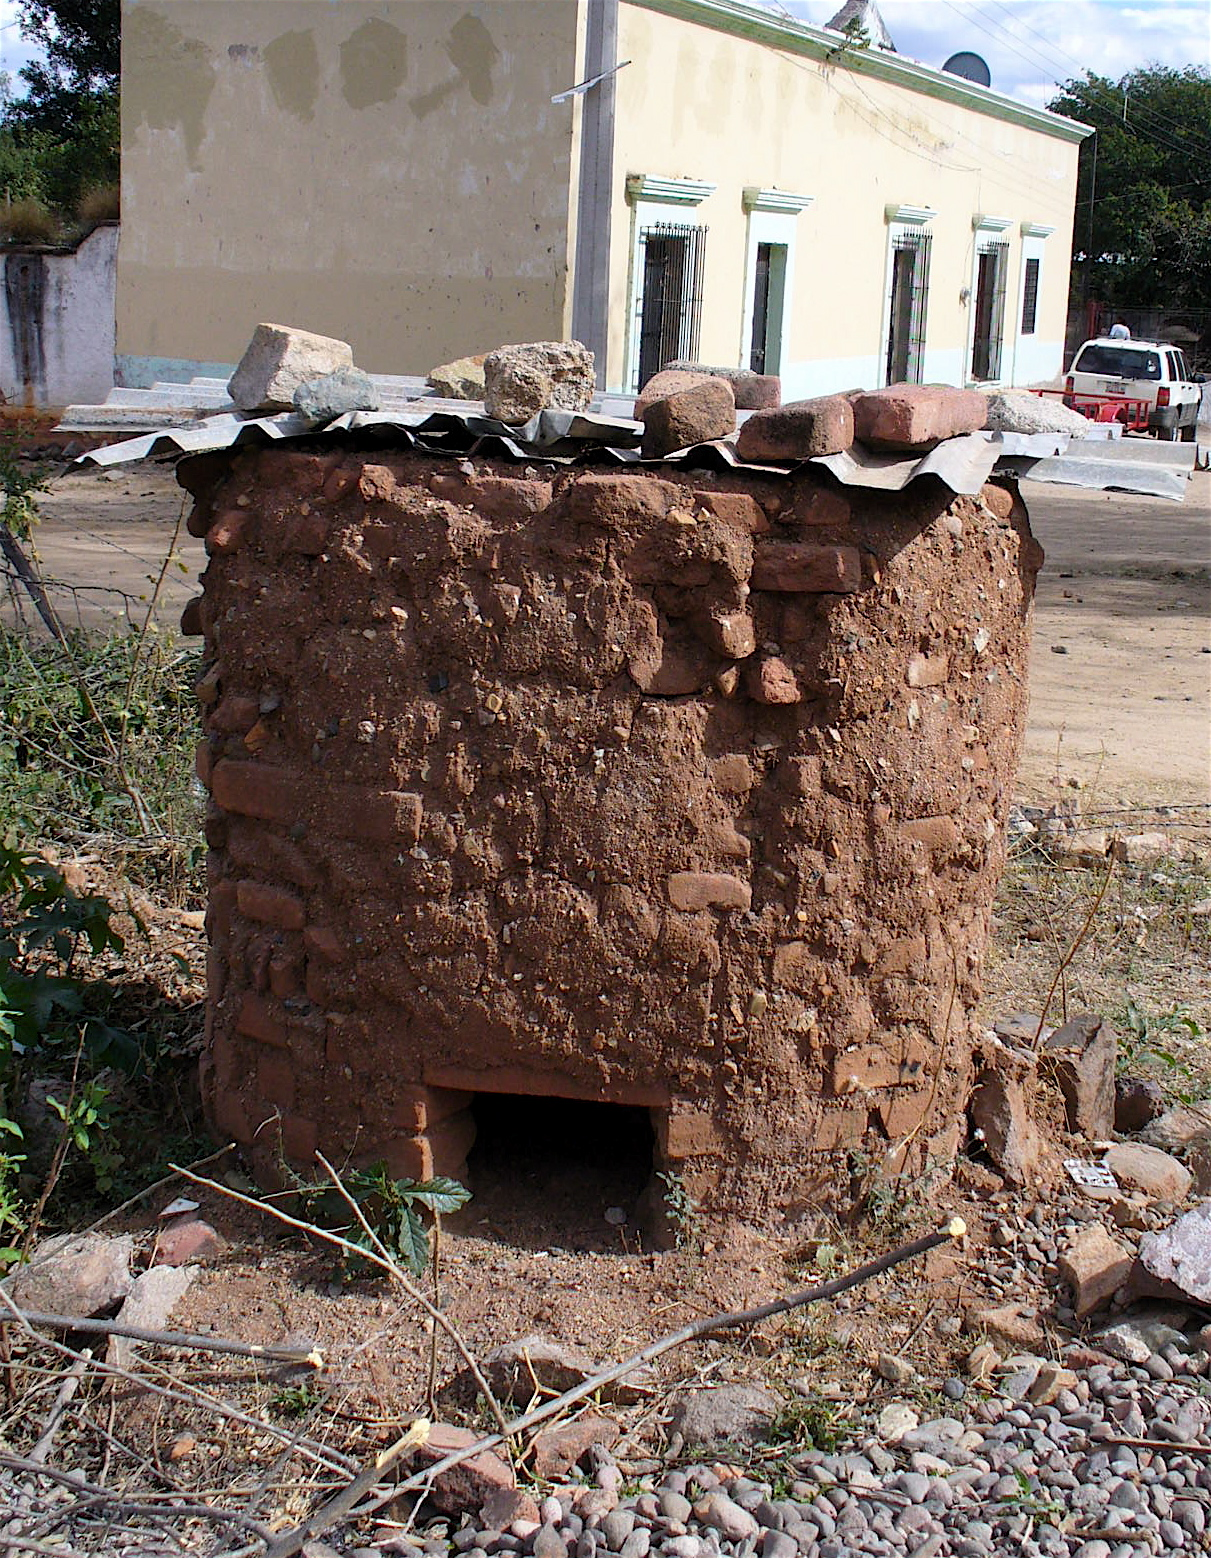 In the nearby town of La Aduana we ran across this small kiln...